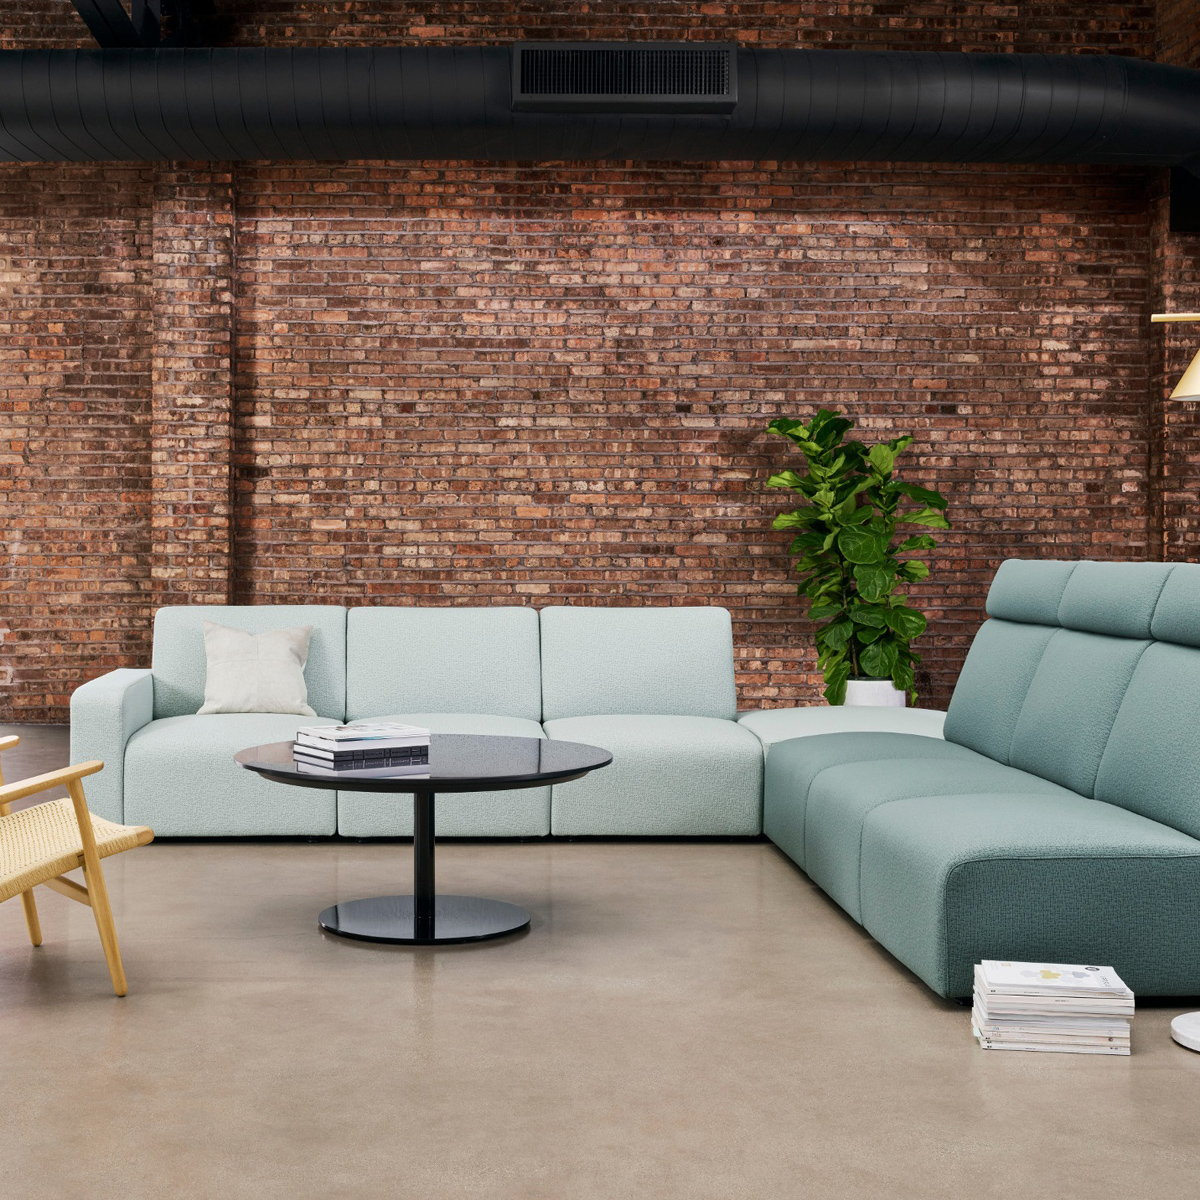 Coalesse Launches Sistema Lounge System